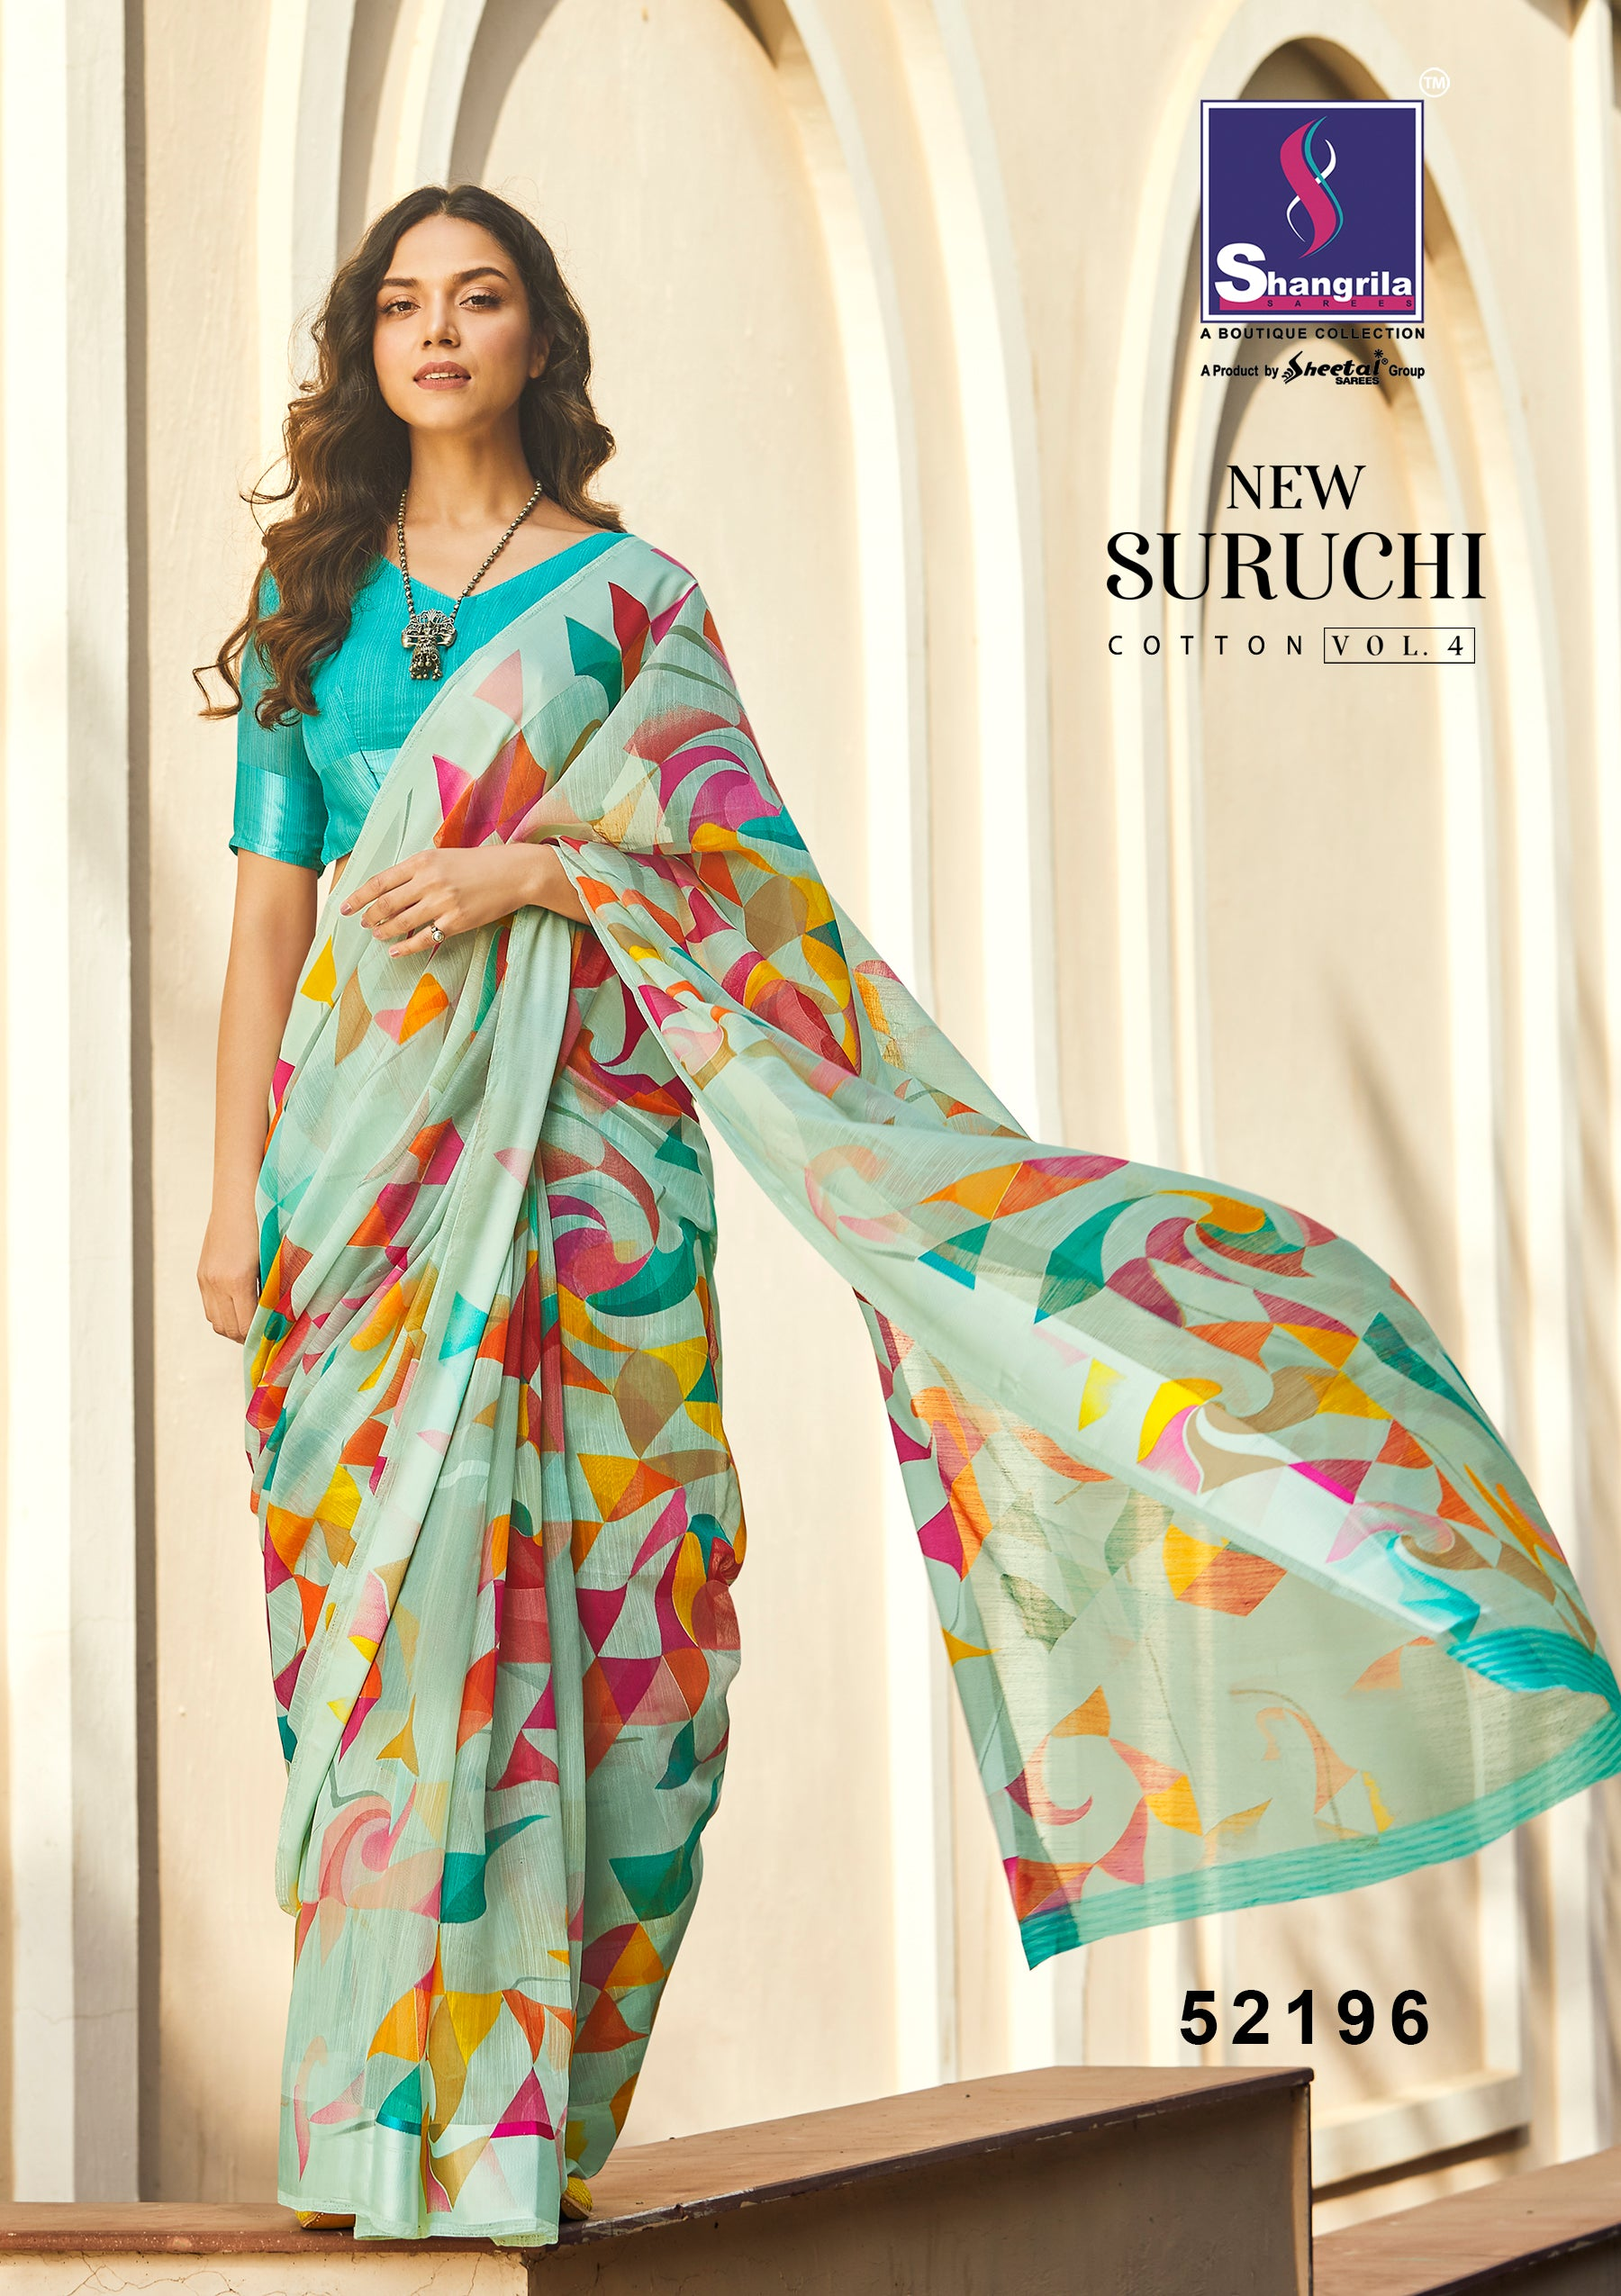 Shangrila designer aqua green geometric printed linen cotton saree